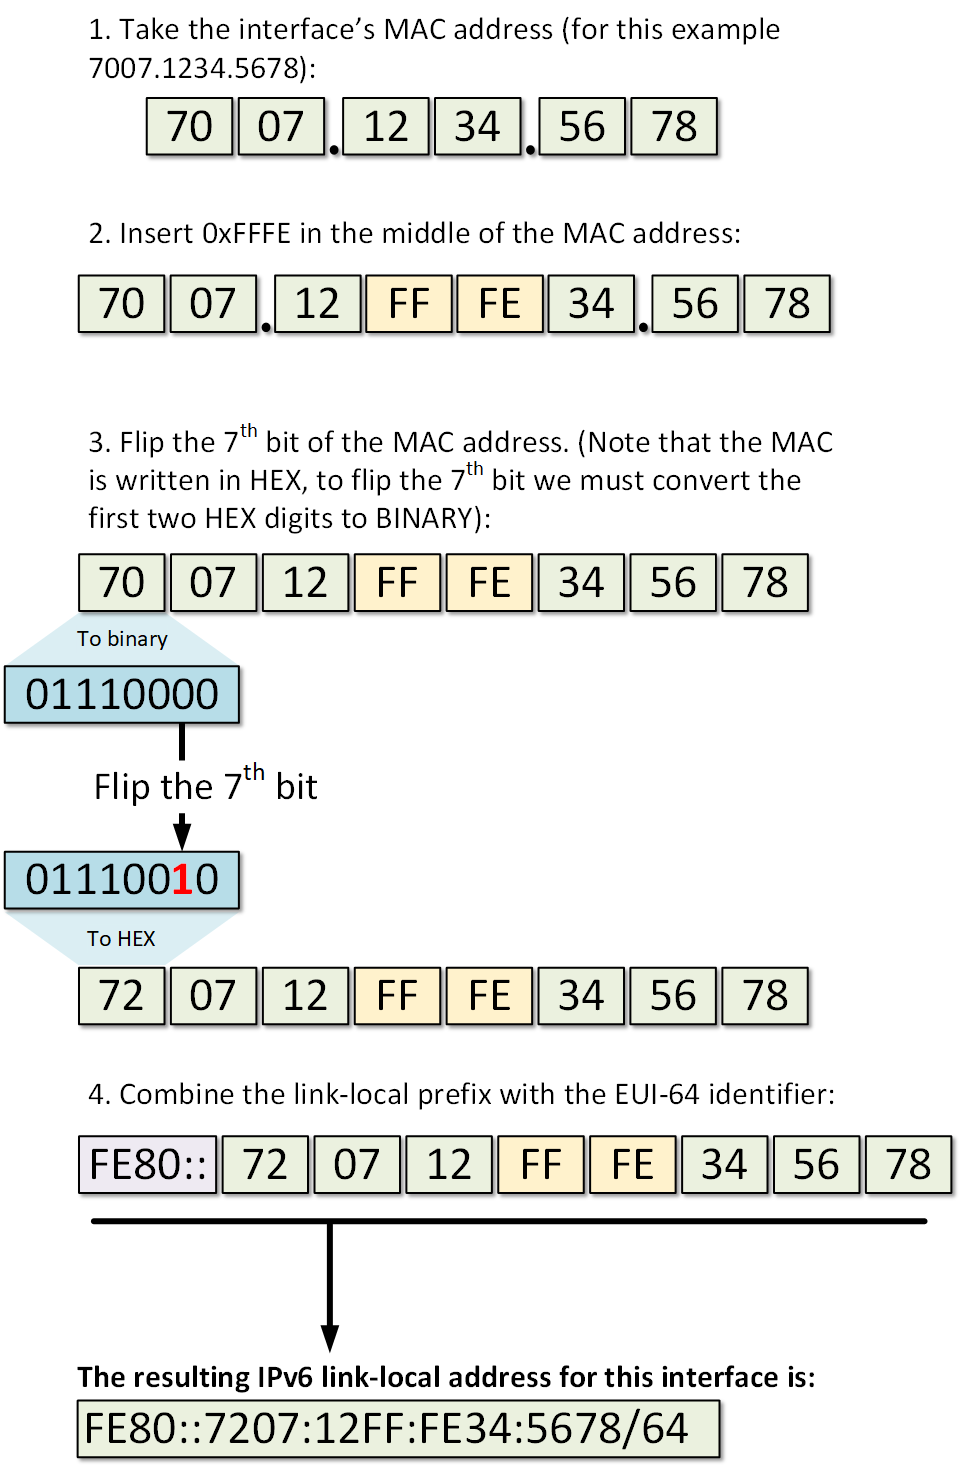 Generating a link-local address from interface's MAC address